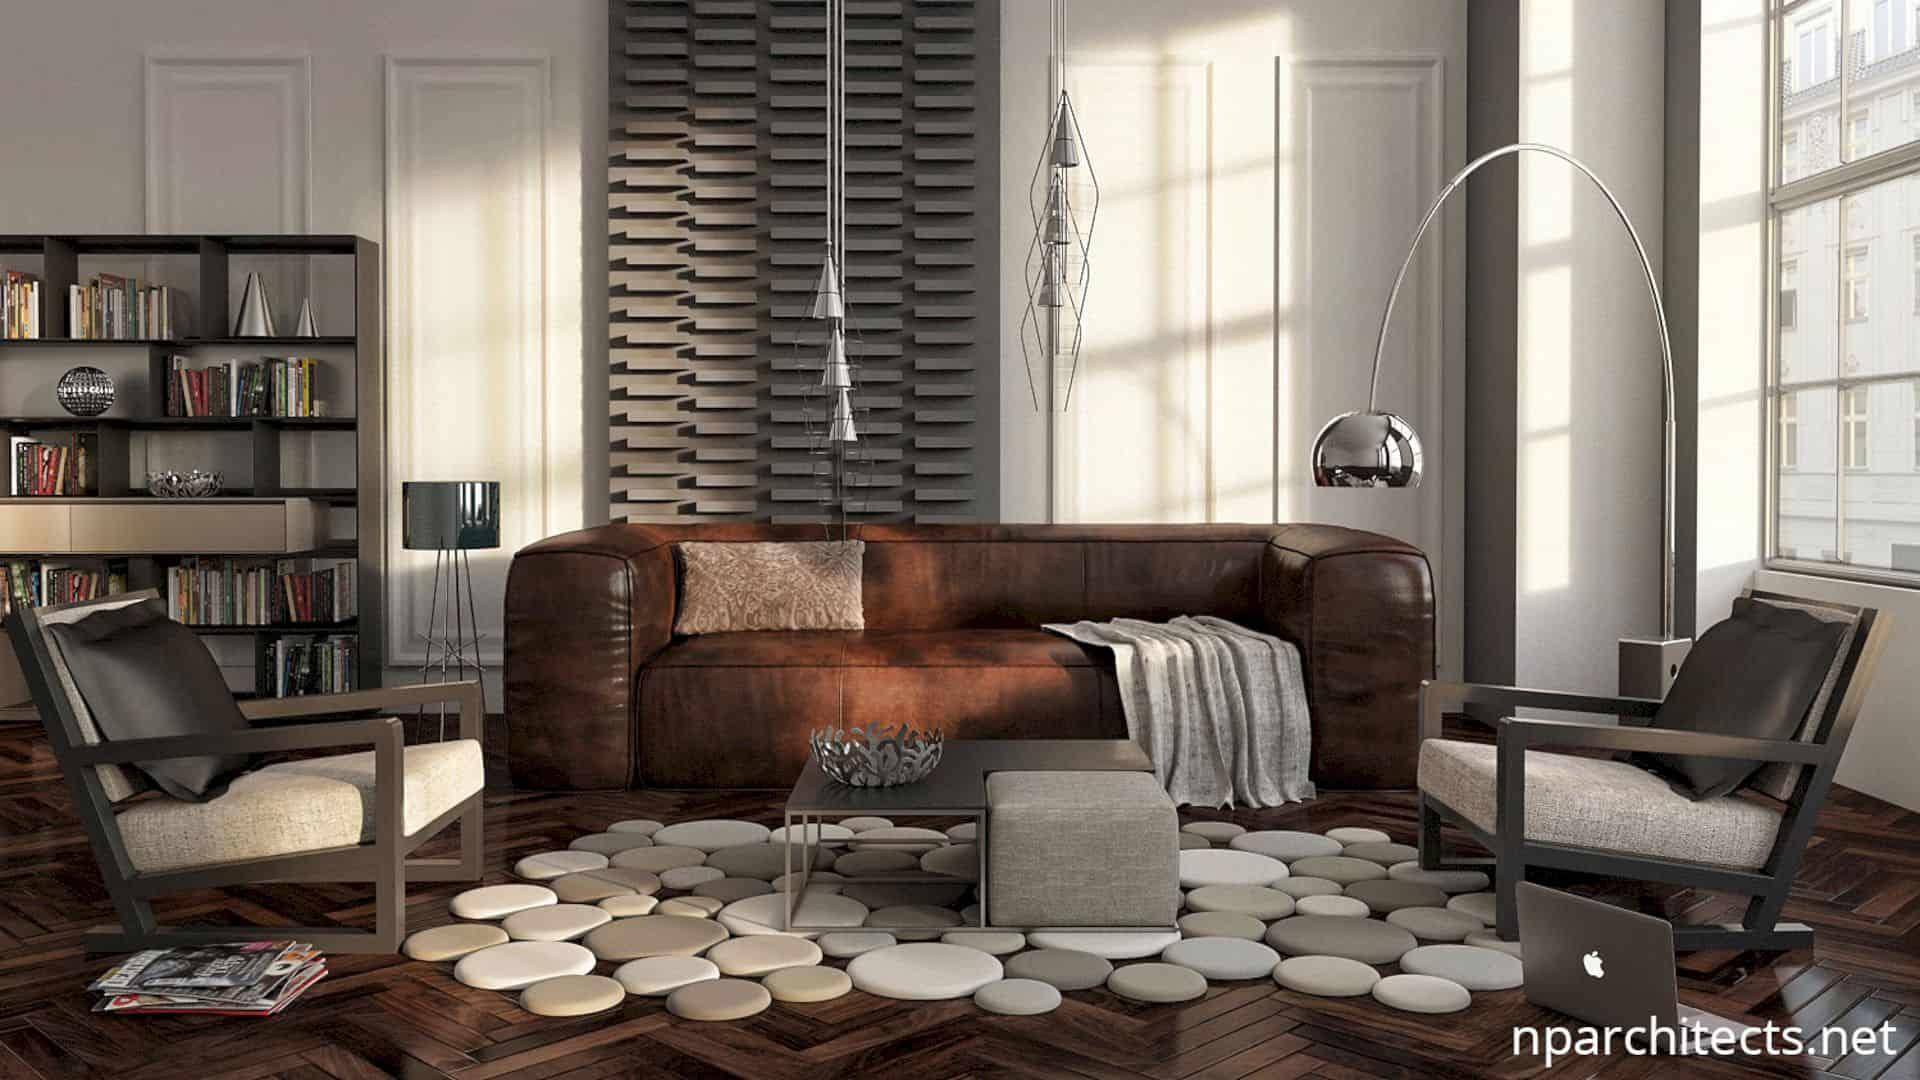 Modern Apartment Interior By Nparchitects 6